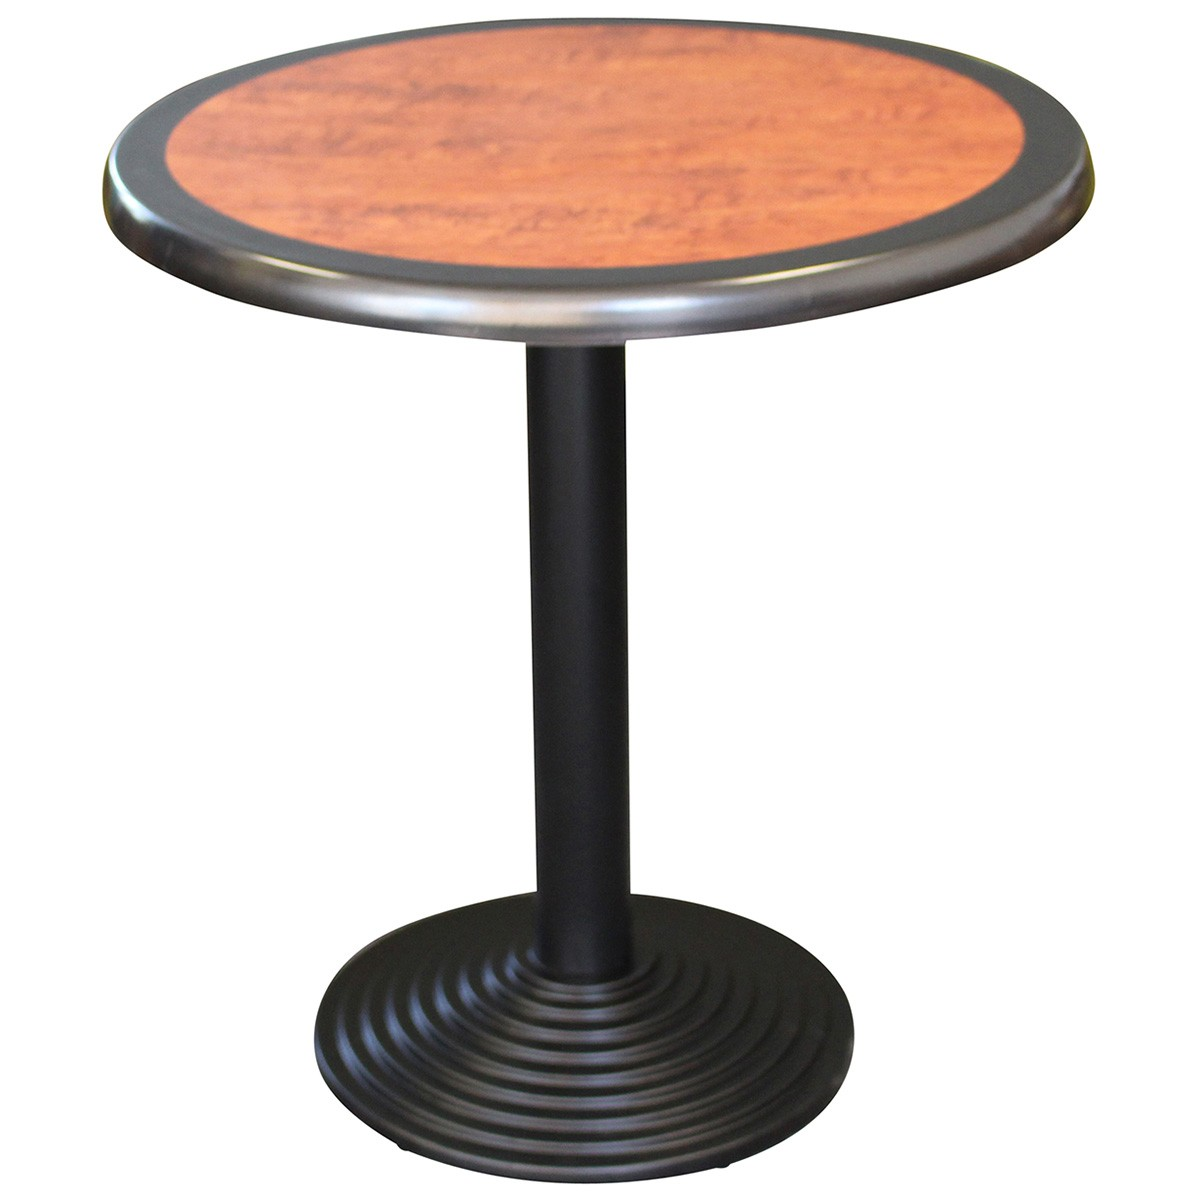 Cascina Commercial Grade Round Dining Table, 80cm, Cherrywood / Black